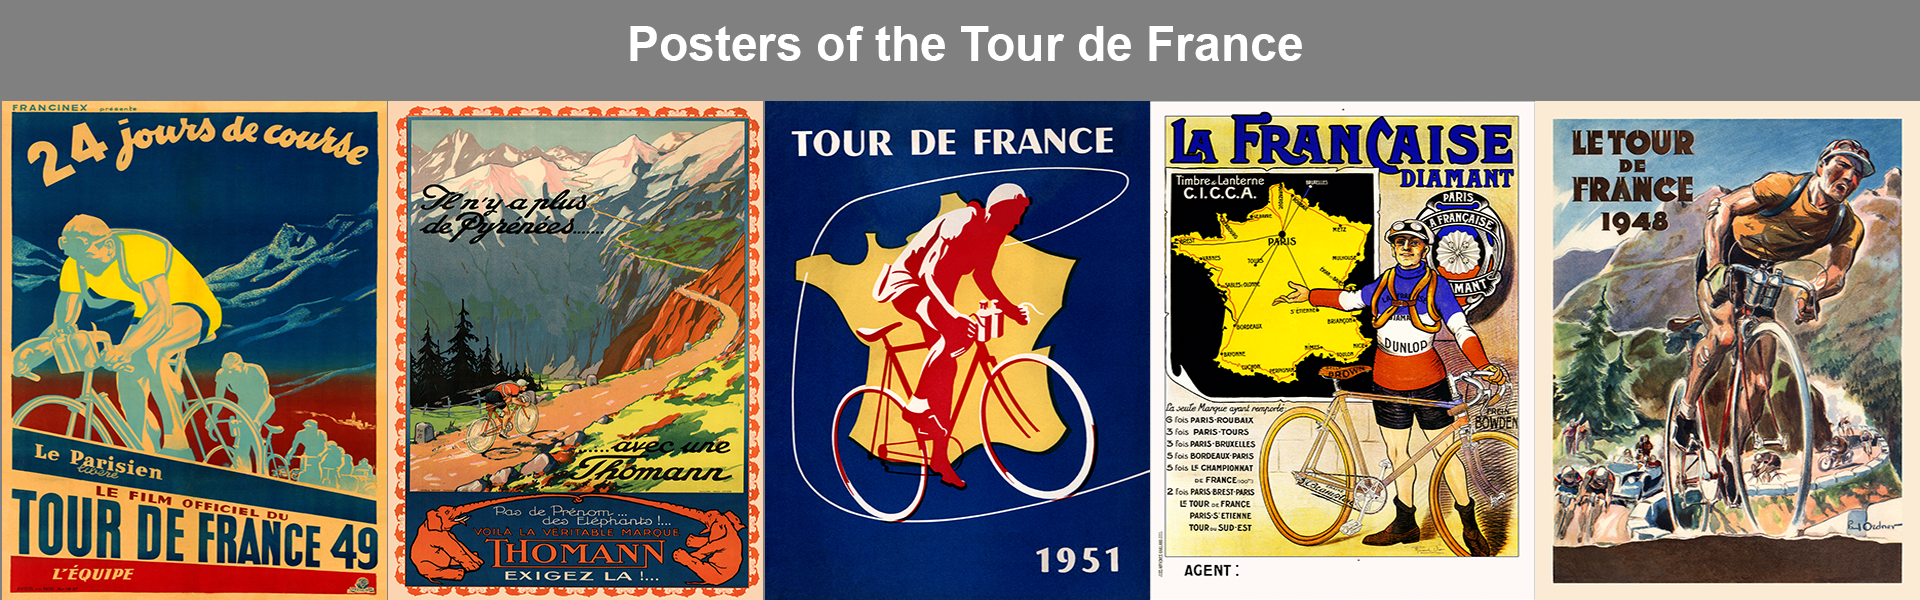 Posters of the Tour de France